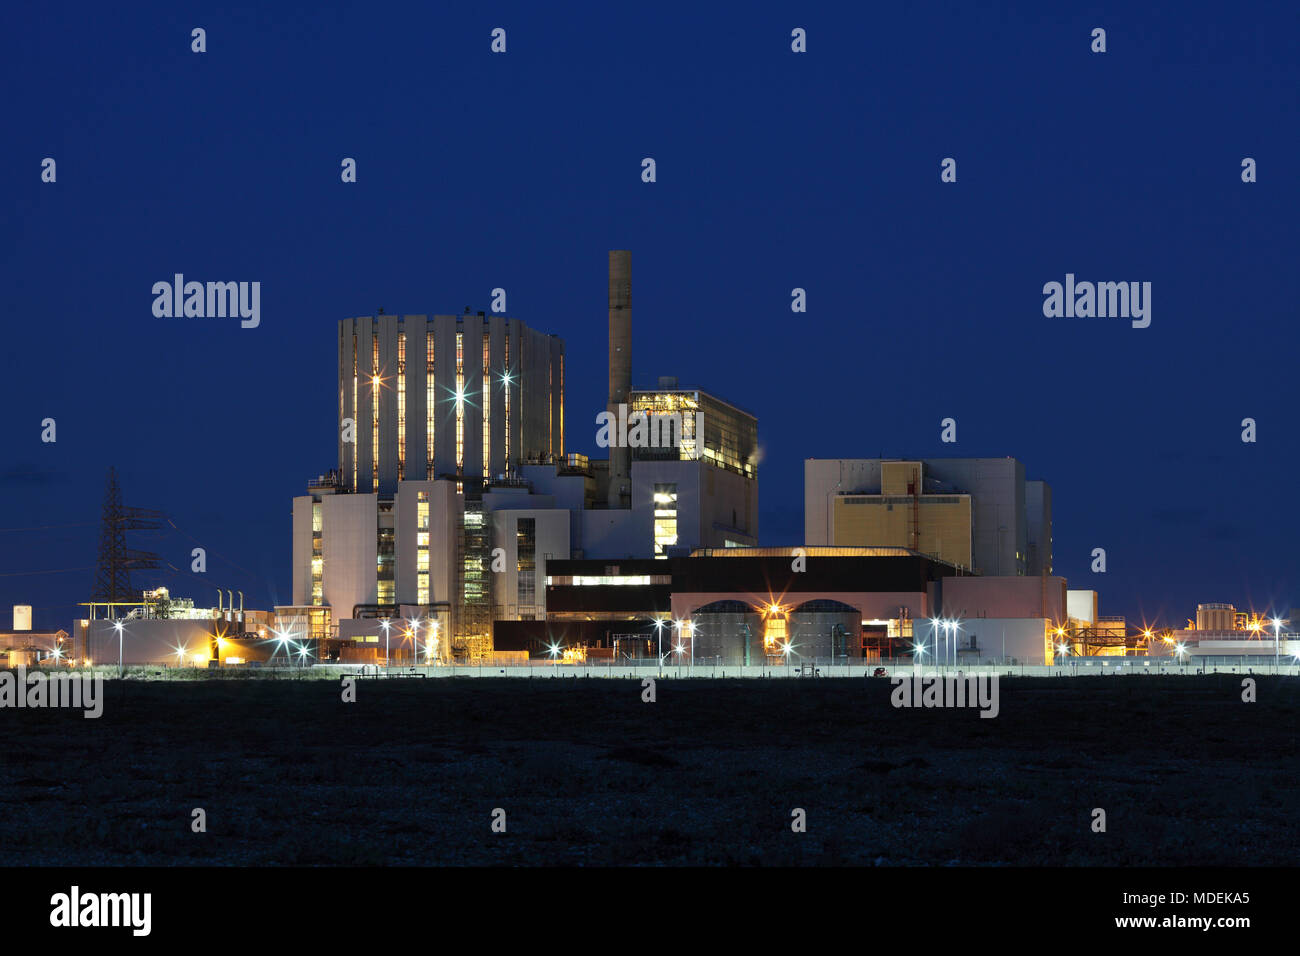 Dungeness nuclear power stations at night. Dungeness B is on the left; Dungeness A on the right. - Stock Image